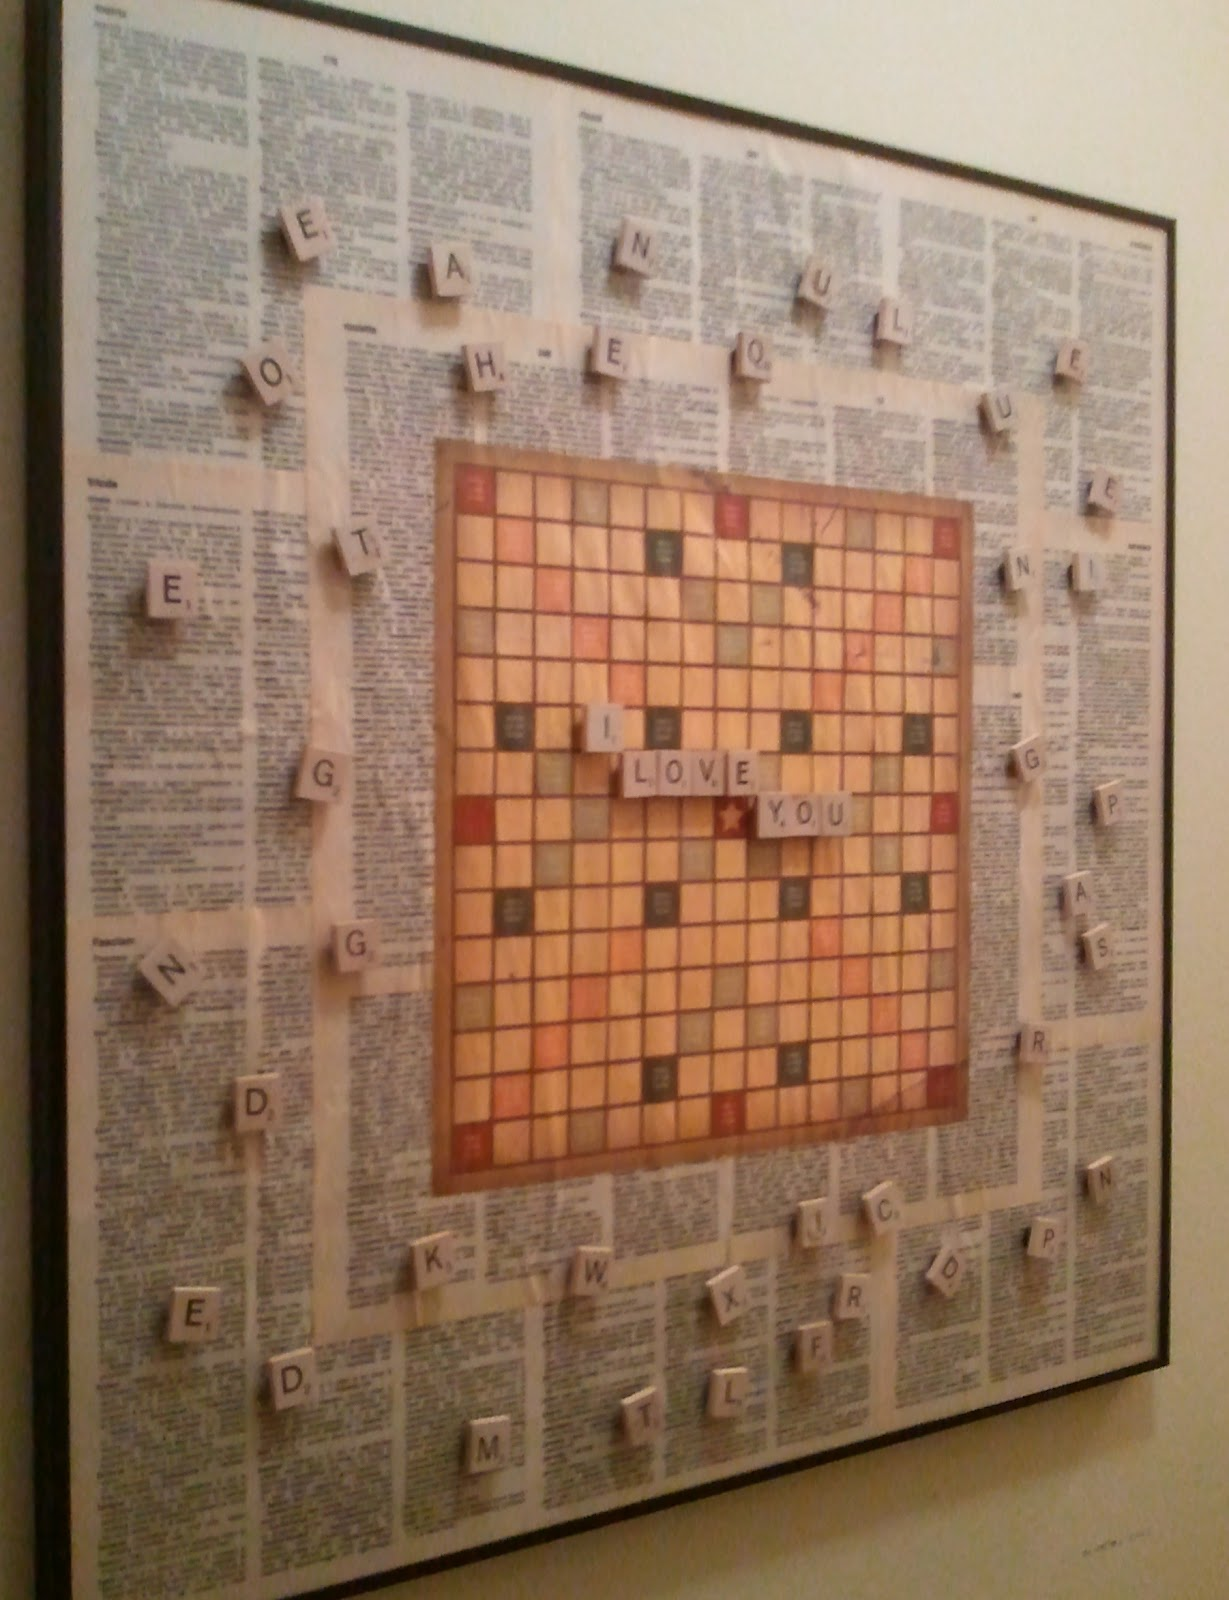 Scrabble Game Old Dictionary